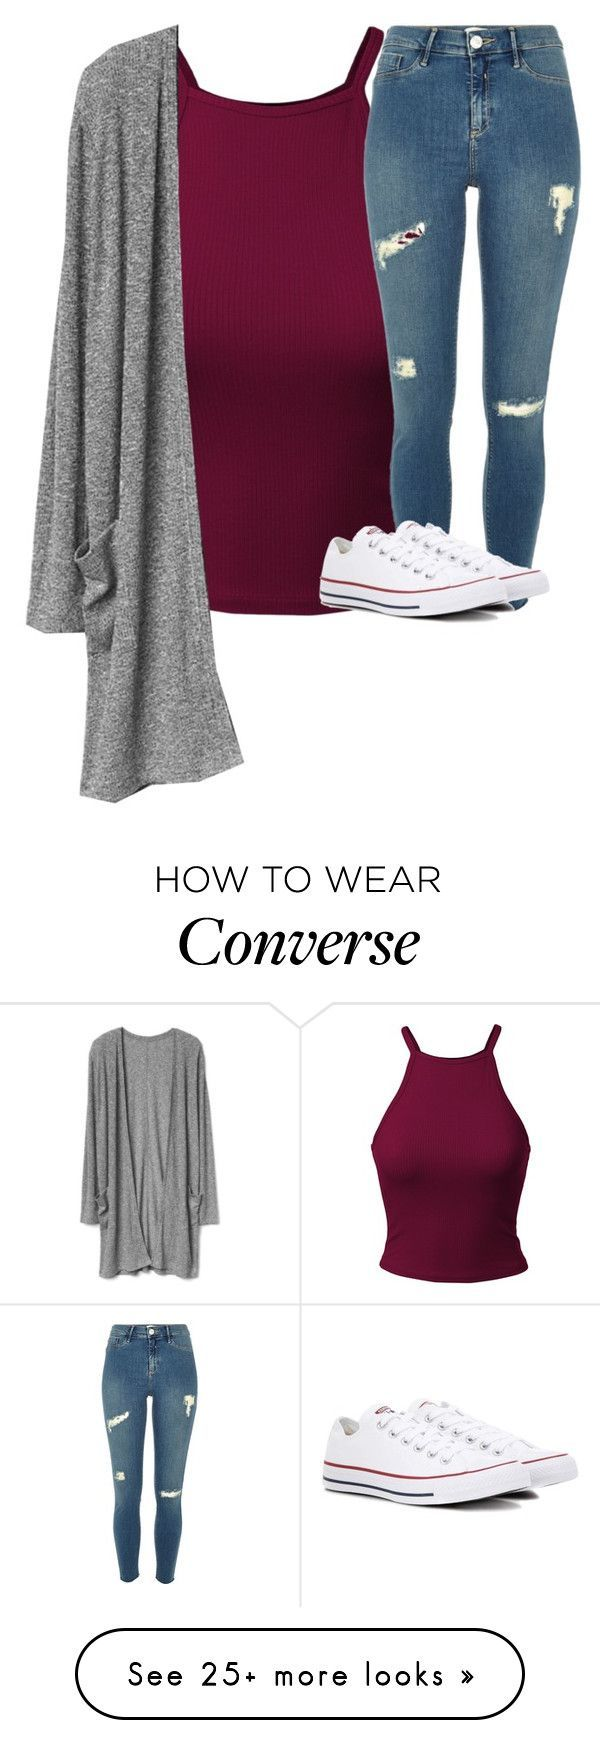 Outstanding 50+ Best Fall Outfit For Women https://fancytecture.com/2017/06/14/50-best-fall-outfit-women/ Accessorize with good jewelry to boost the dress that you select. Empire waist dresses work nicely for women that are petite. Skirts have always been part of casual styles for ladies, although in various patterns and colours.